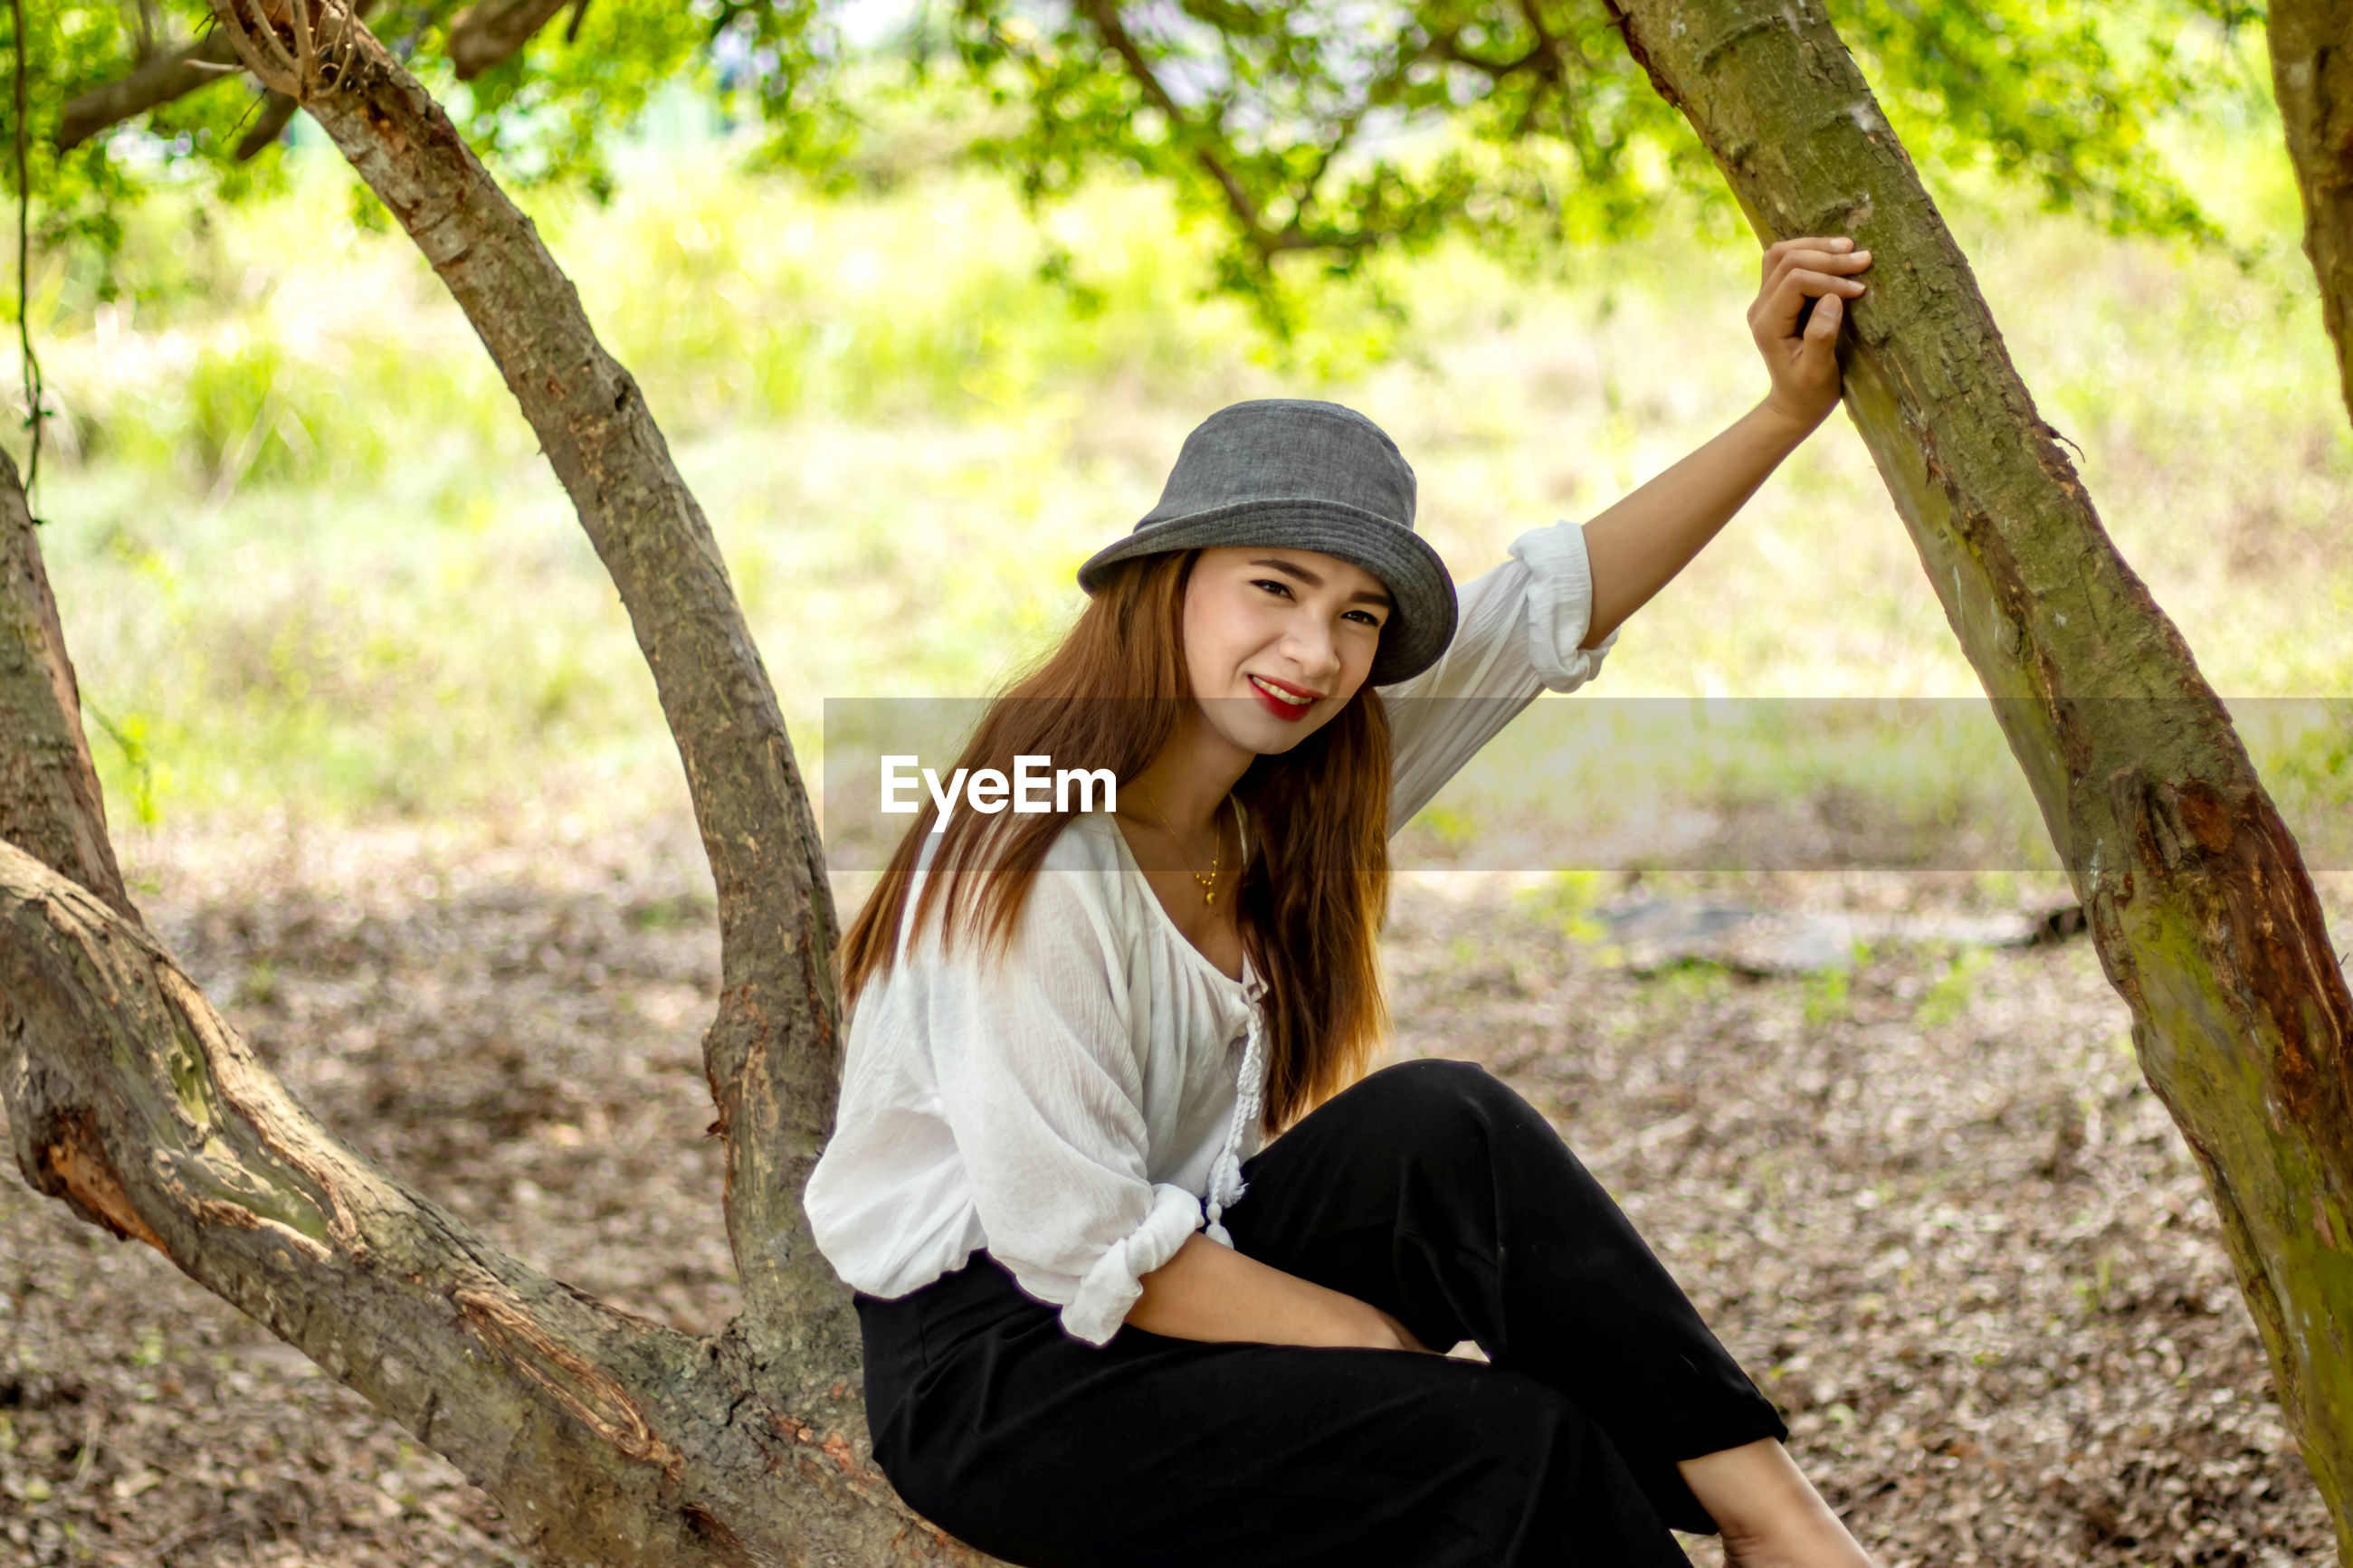 Portrait of smiling woman in hat sitting on tree